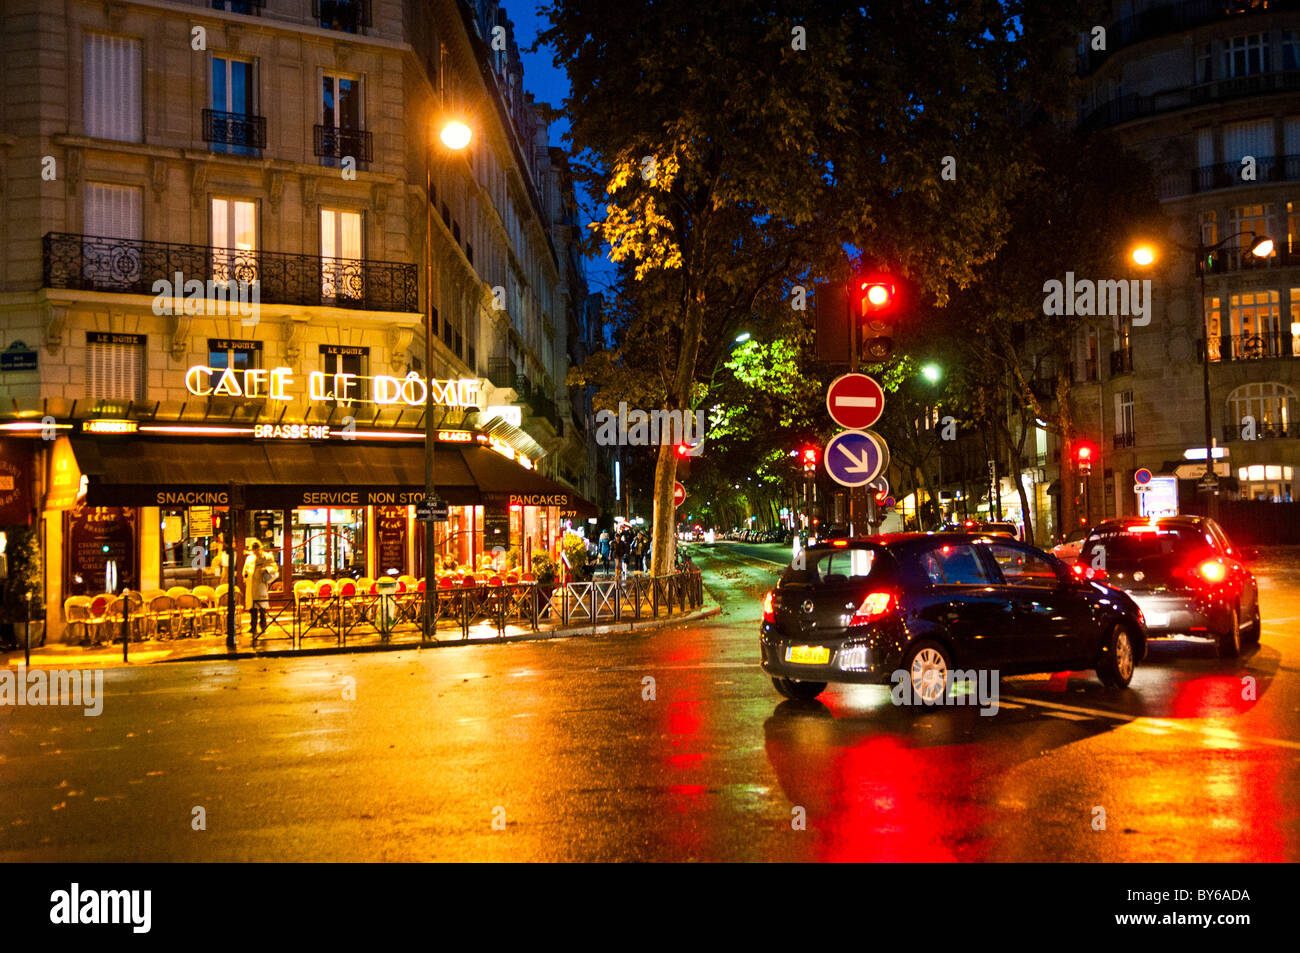 PARIS, France - Wet streets in the 7th arrondissement of Paris near the Eiffel Tower at dusk. Stock Photo